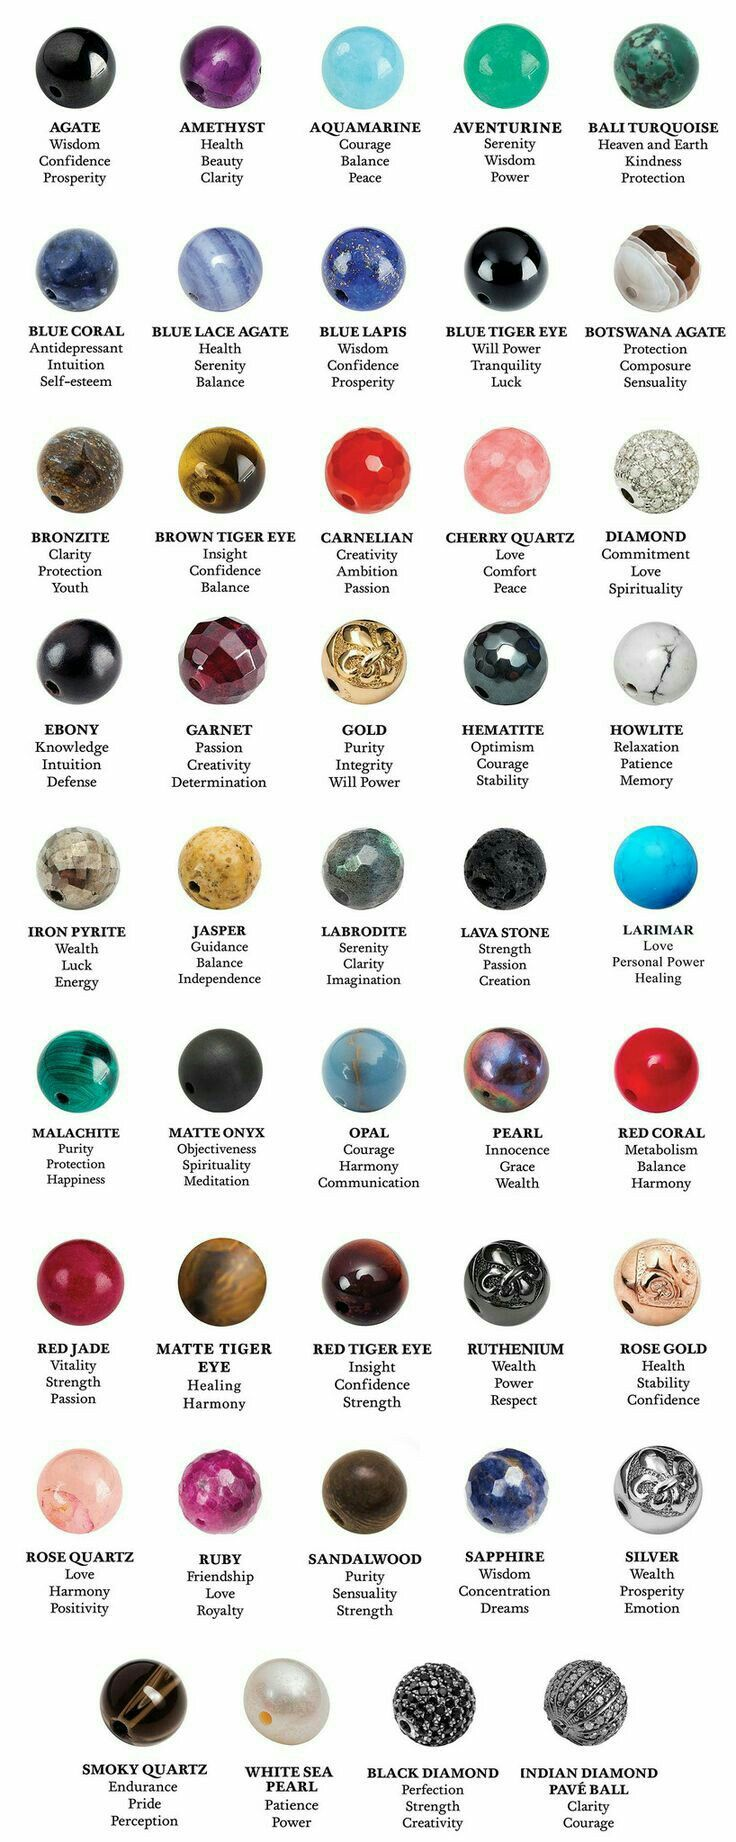 Power stone and gemstone jewelry meanings.